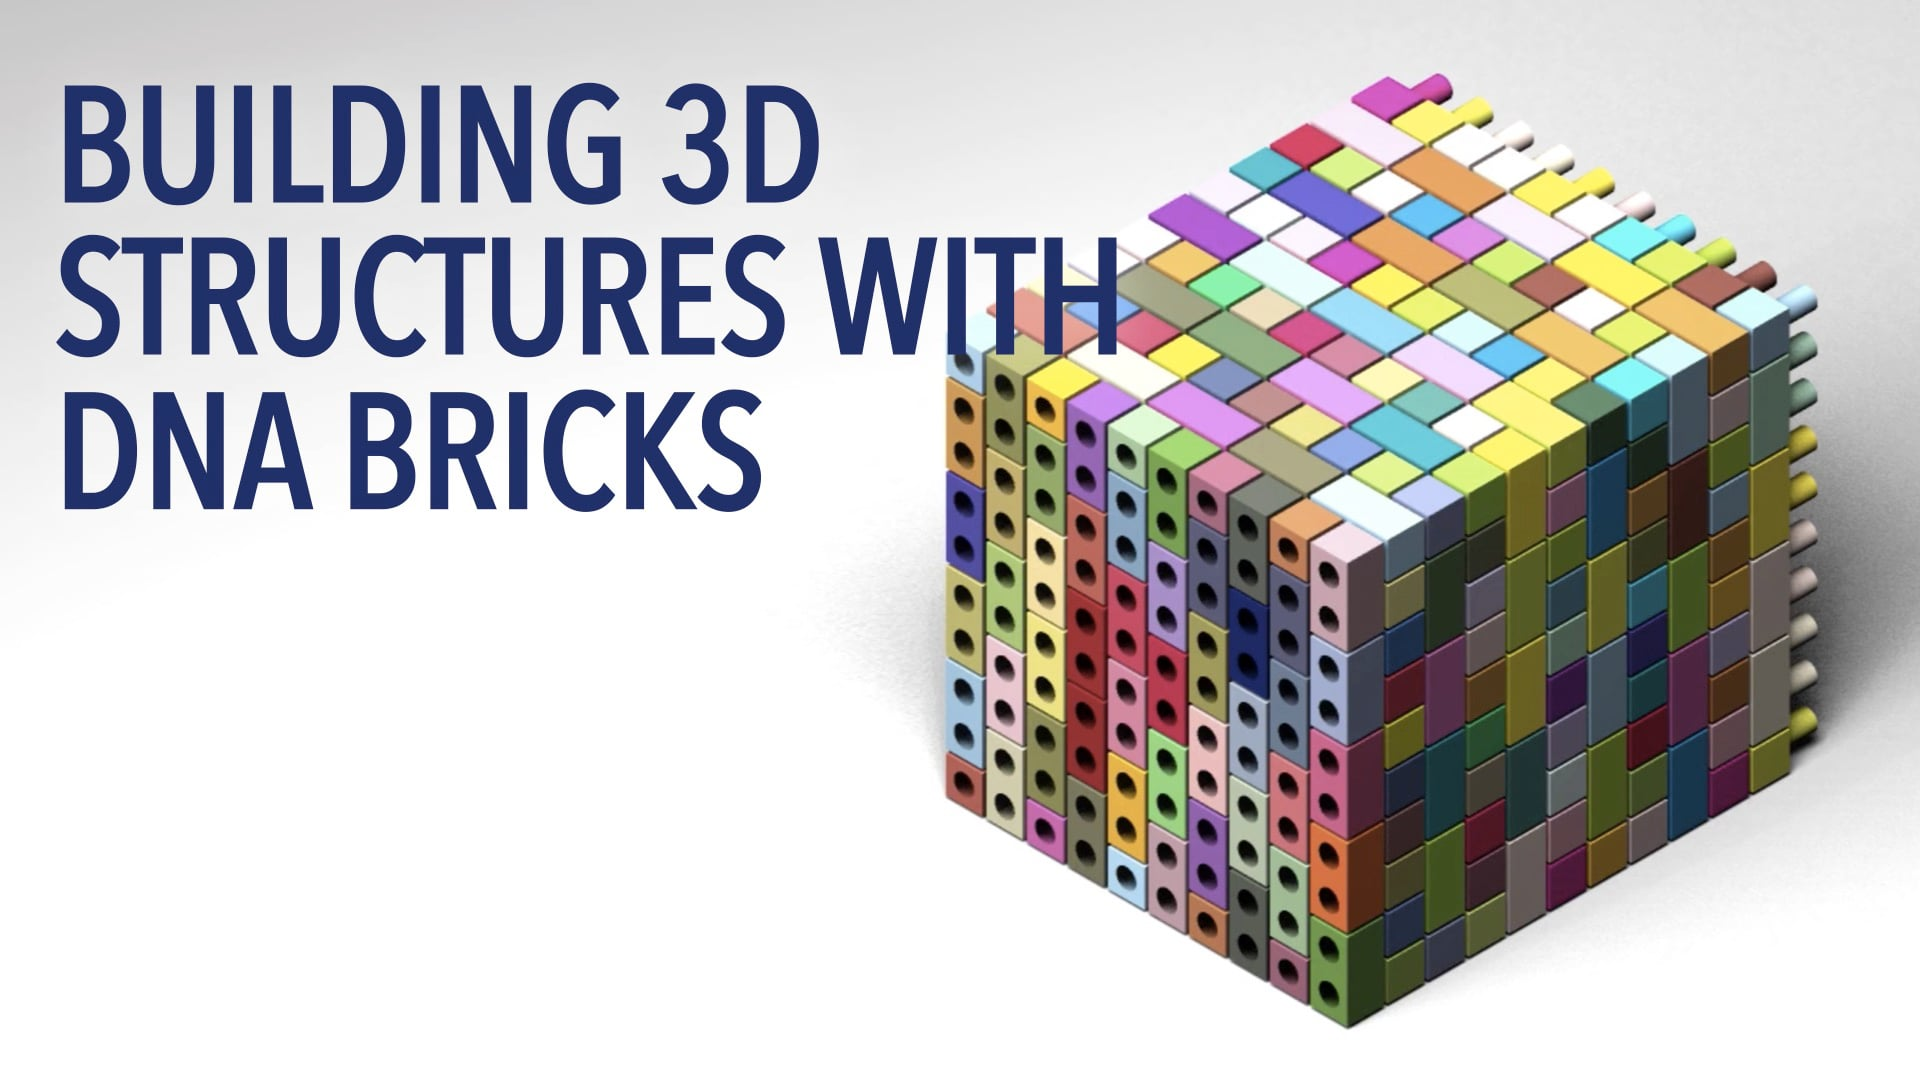 Building 3D Structures with DNA Bricks